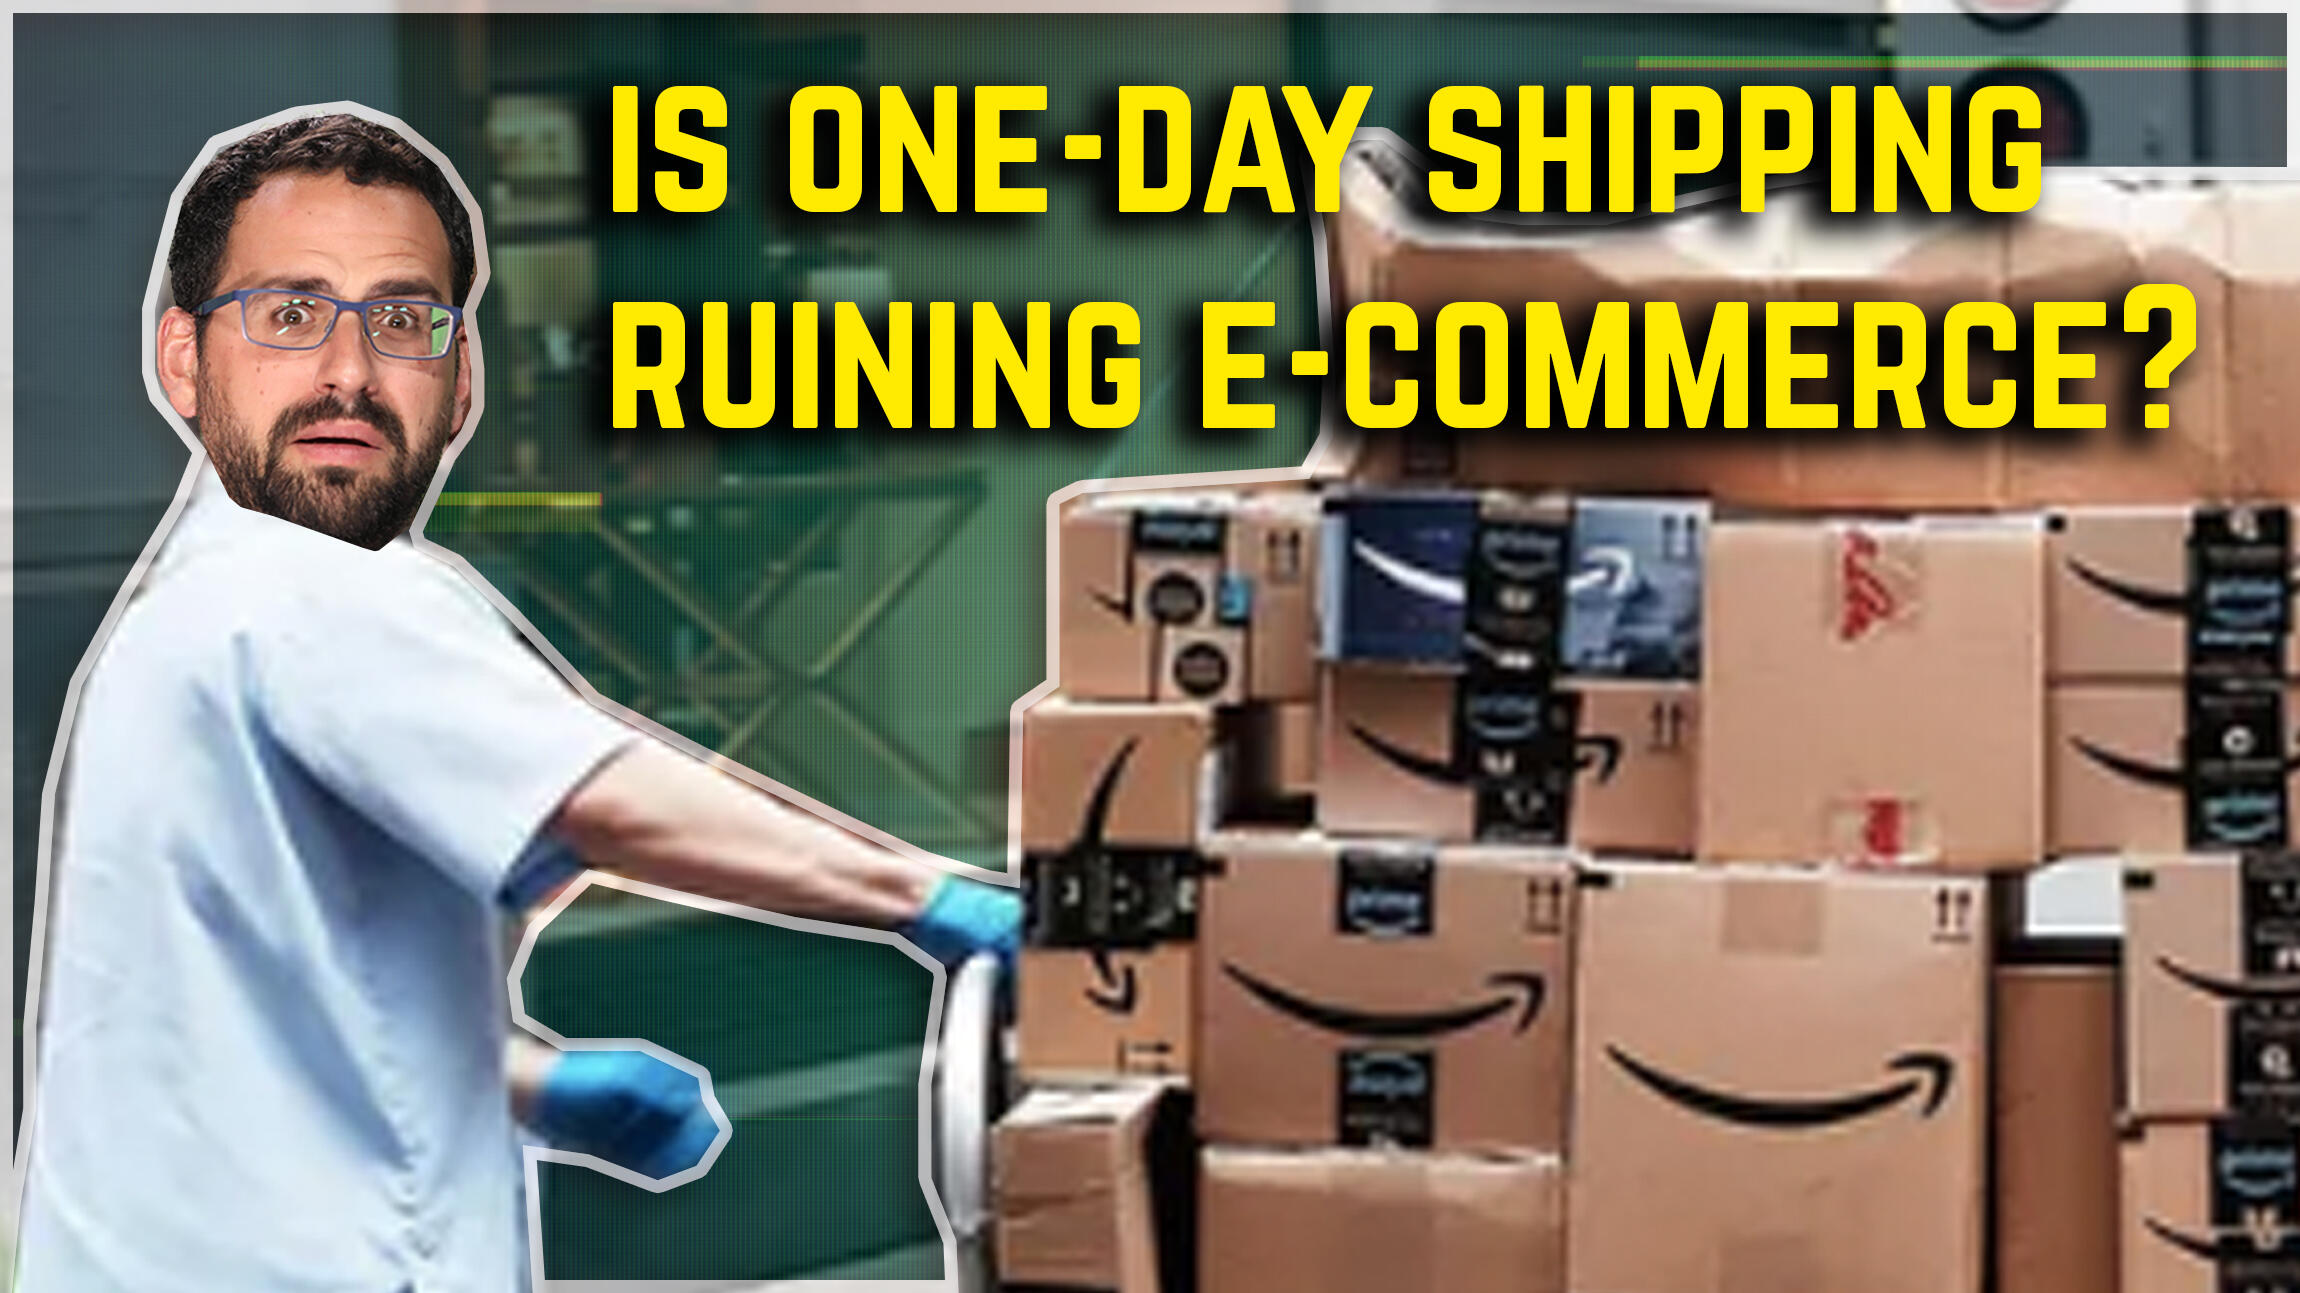 Video: Will one-day shipping ruin e-commerce as we know it? (The Daily Charge, 11/21/2019)